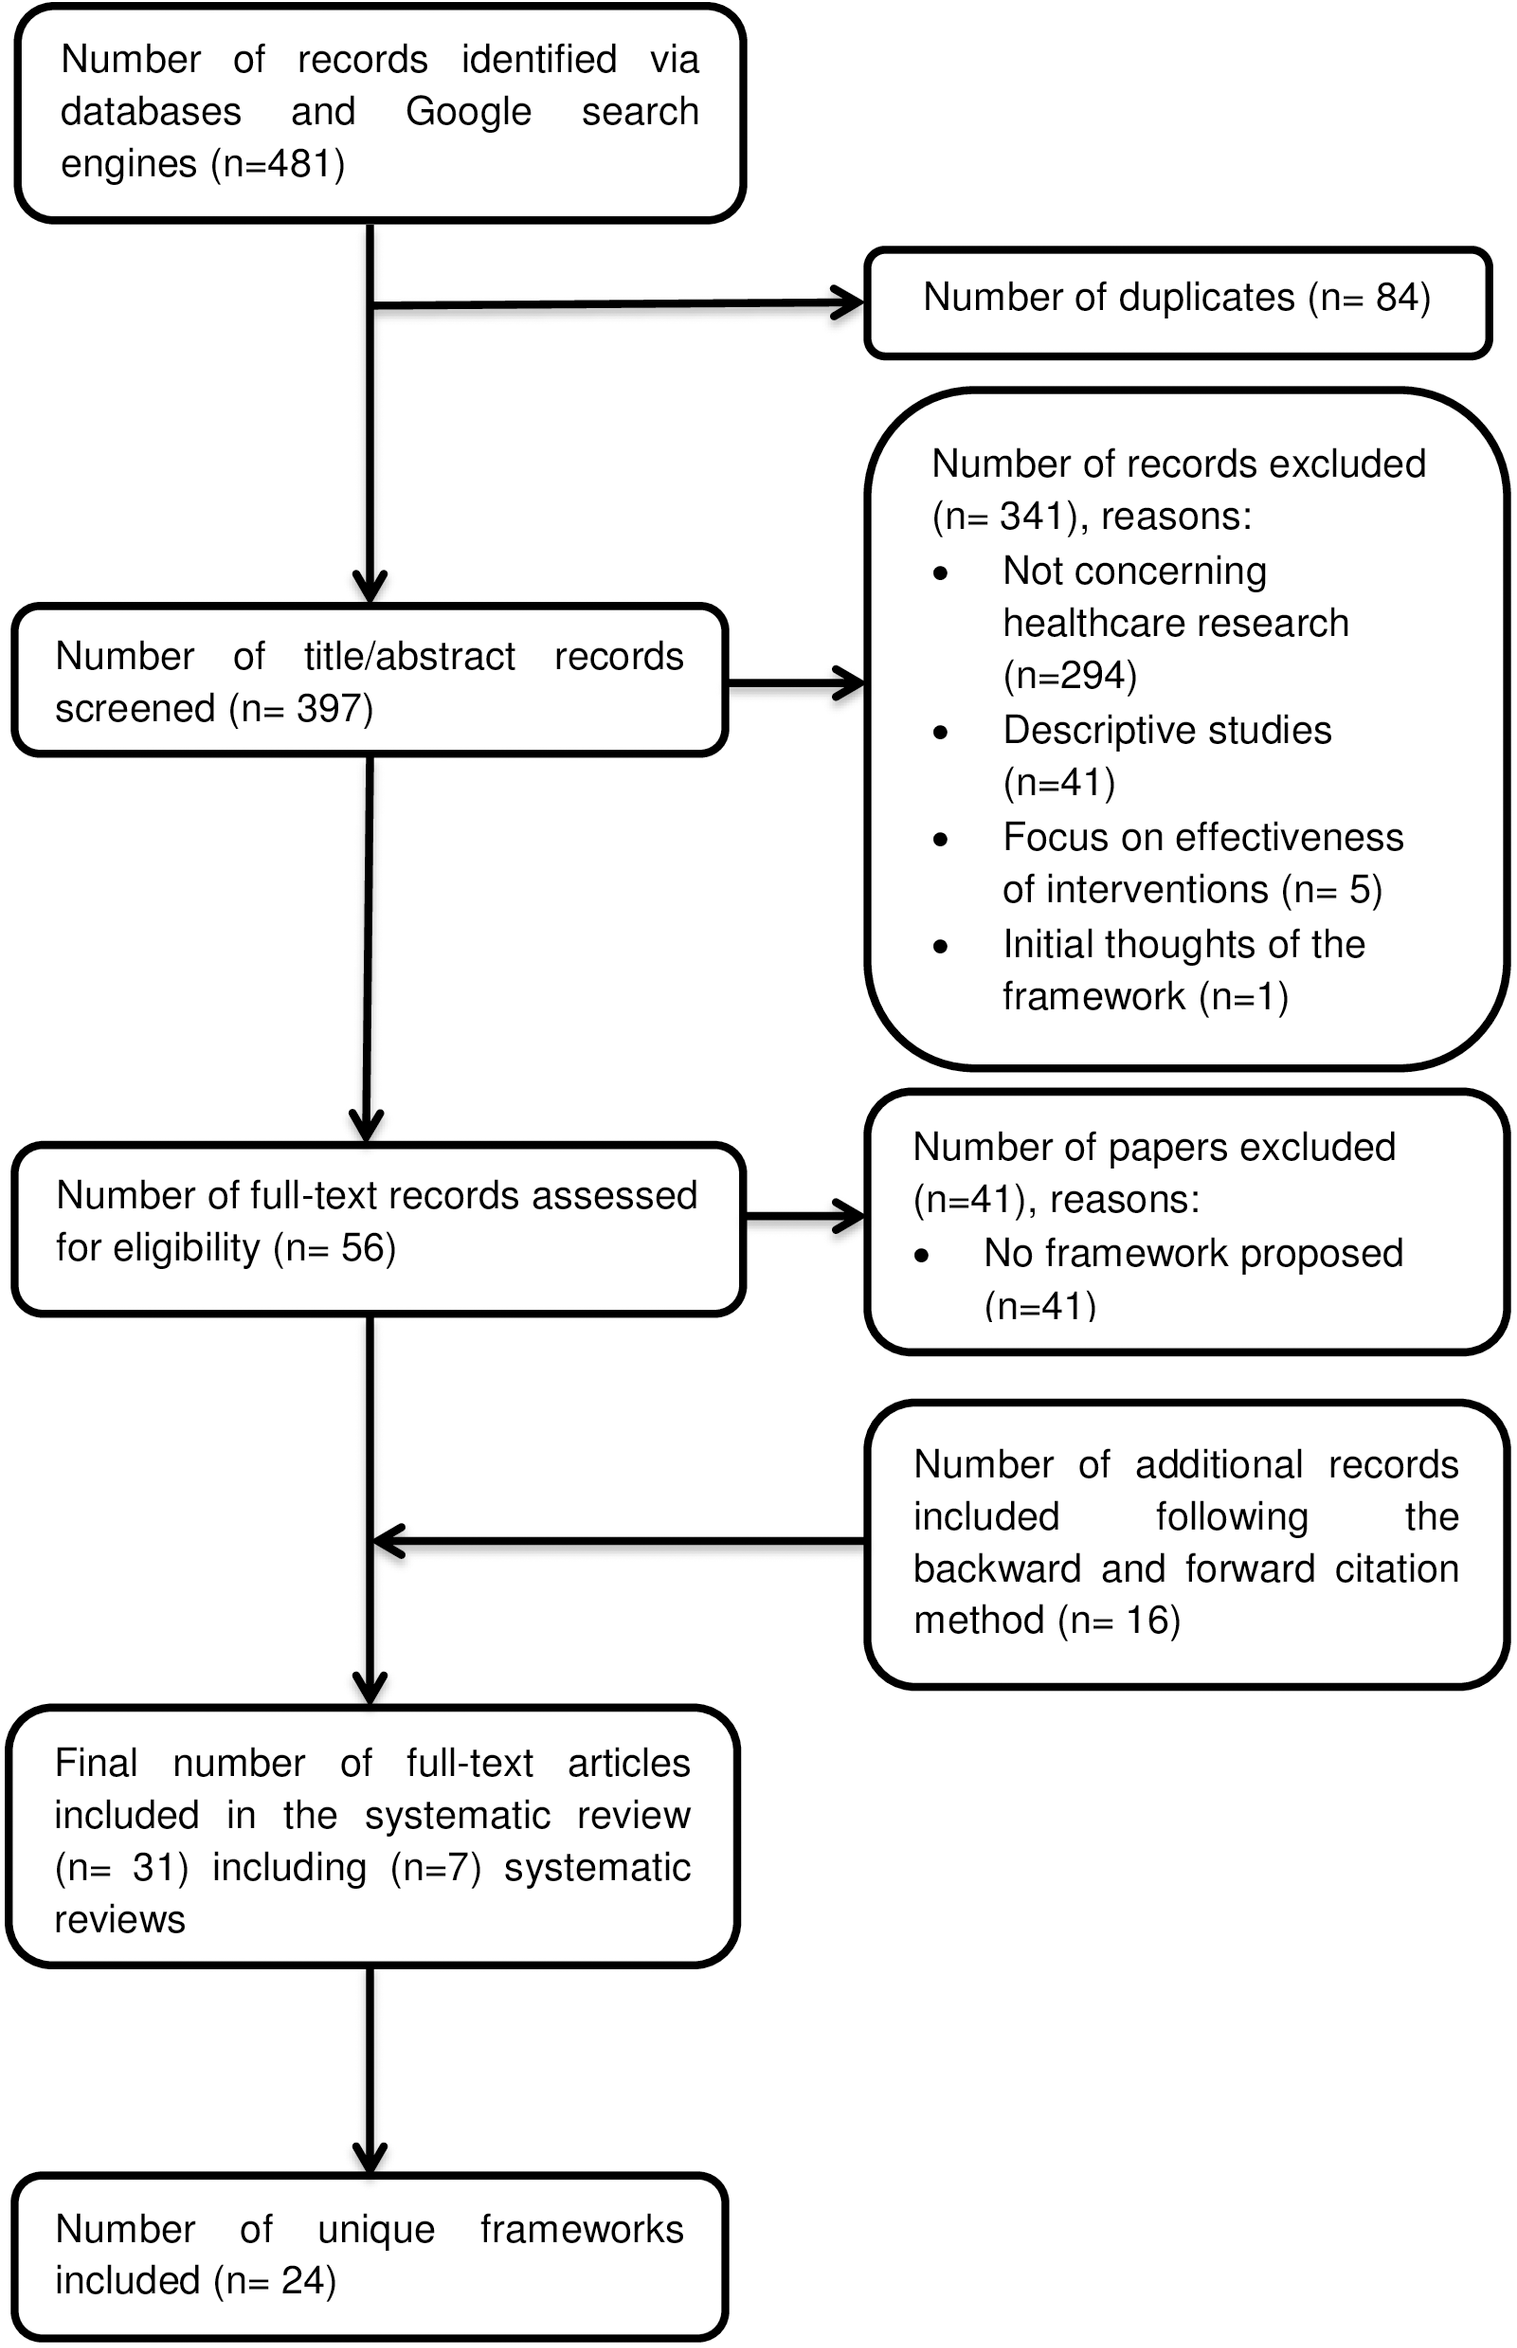 Preferred Reporting Items for Systematic Reviews and Meta-Analyses (PRISMA) flow diagram.